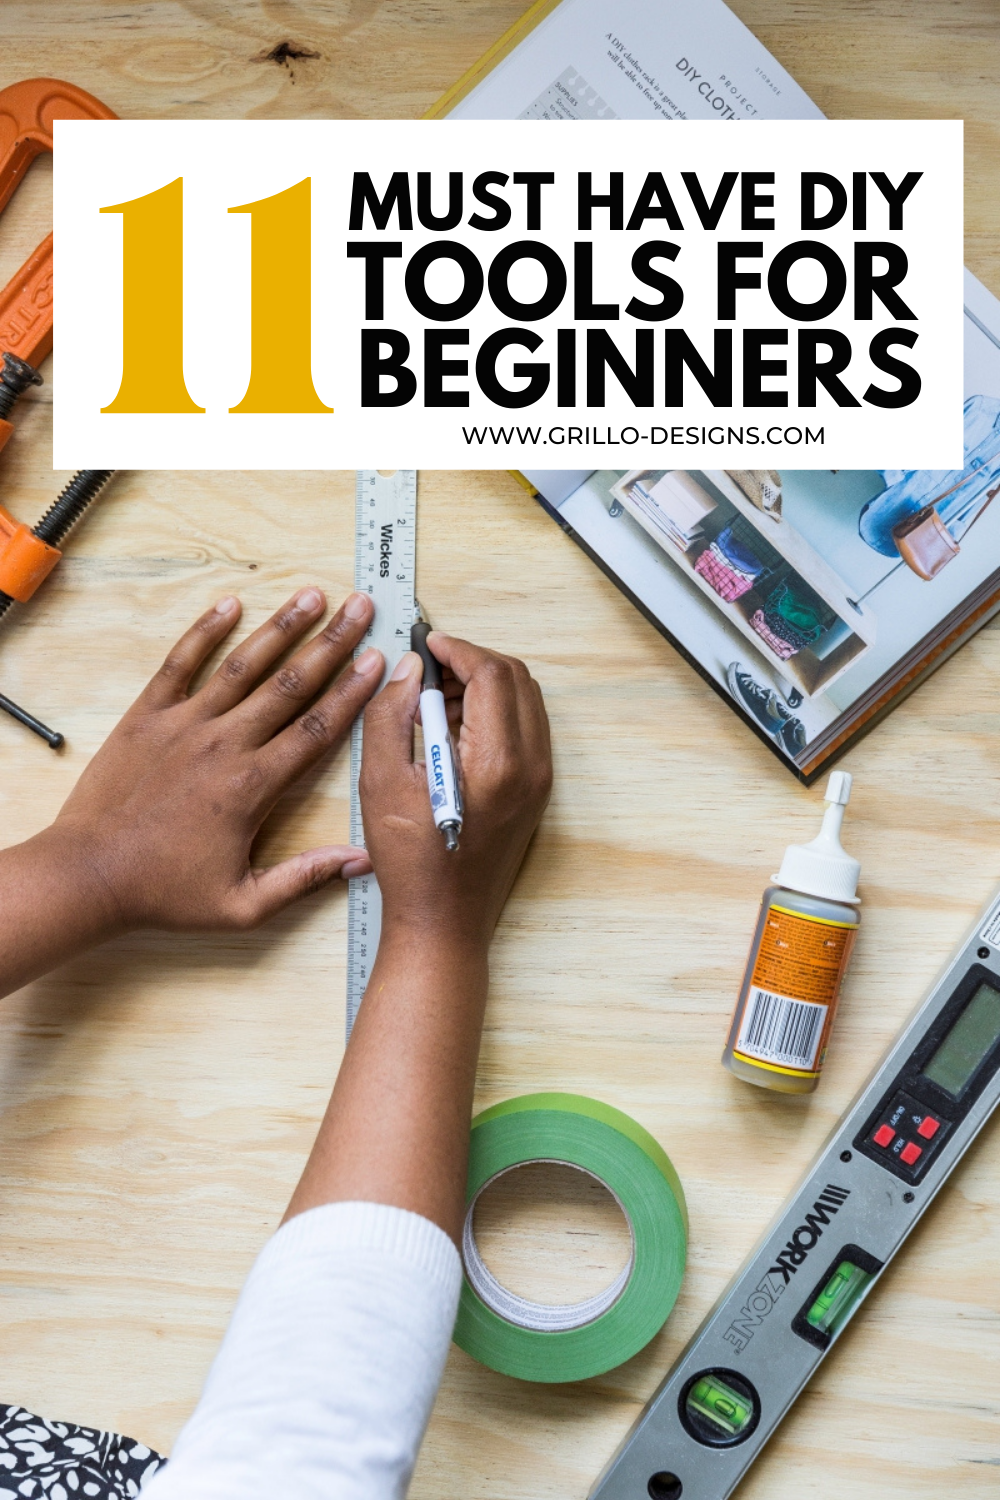 DIY tools for beginners pinterest graphic